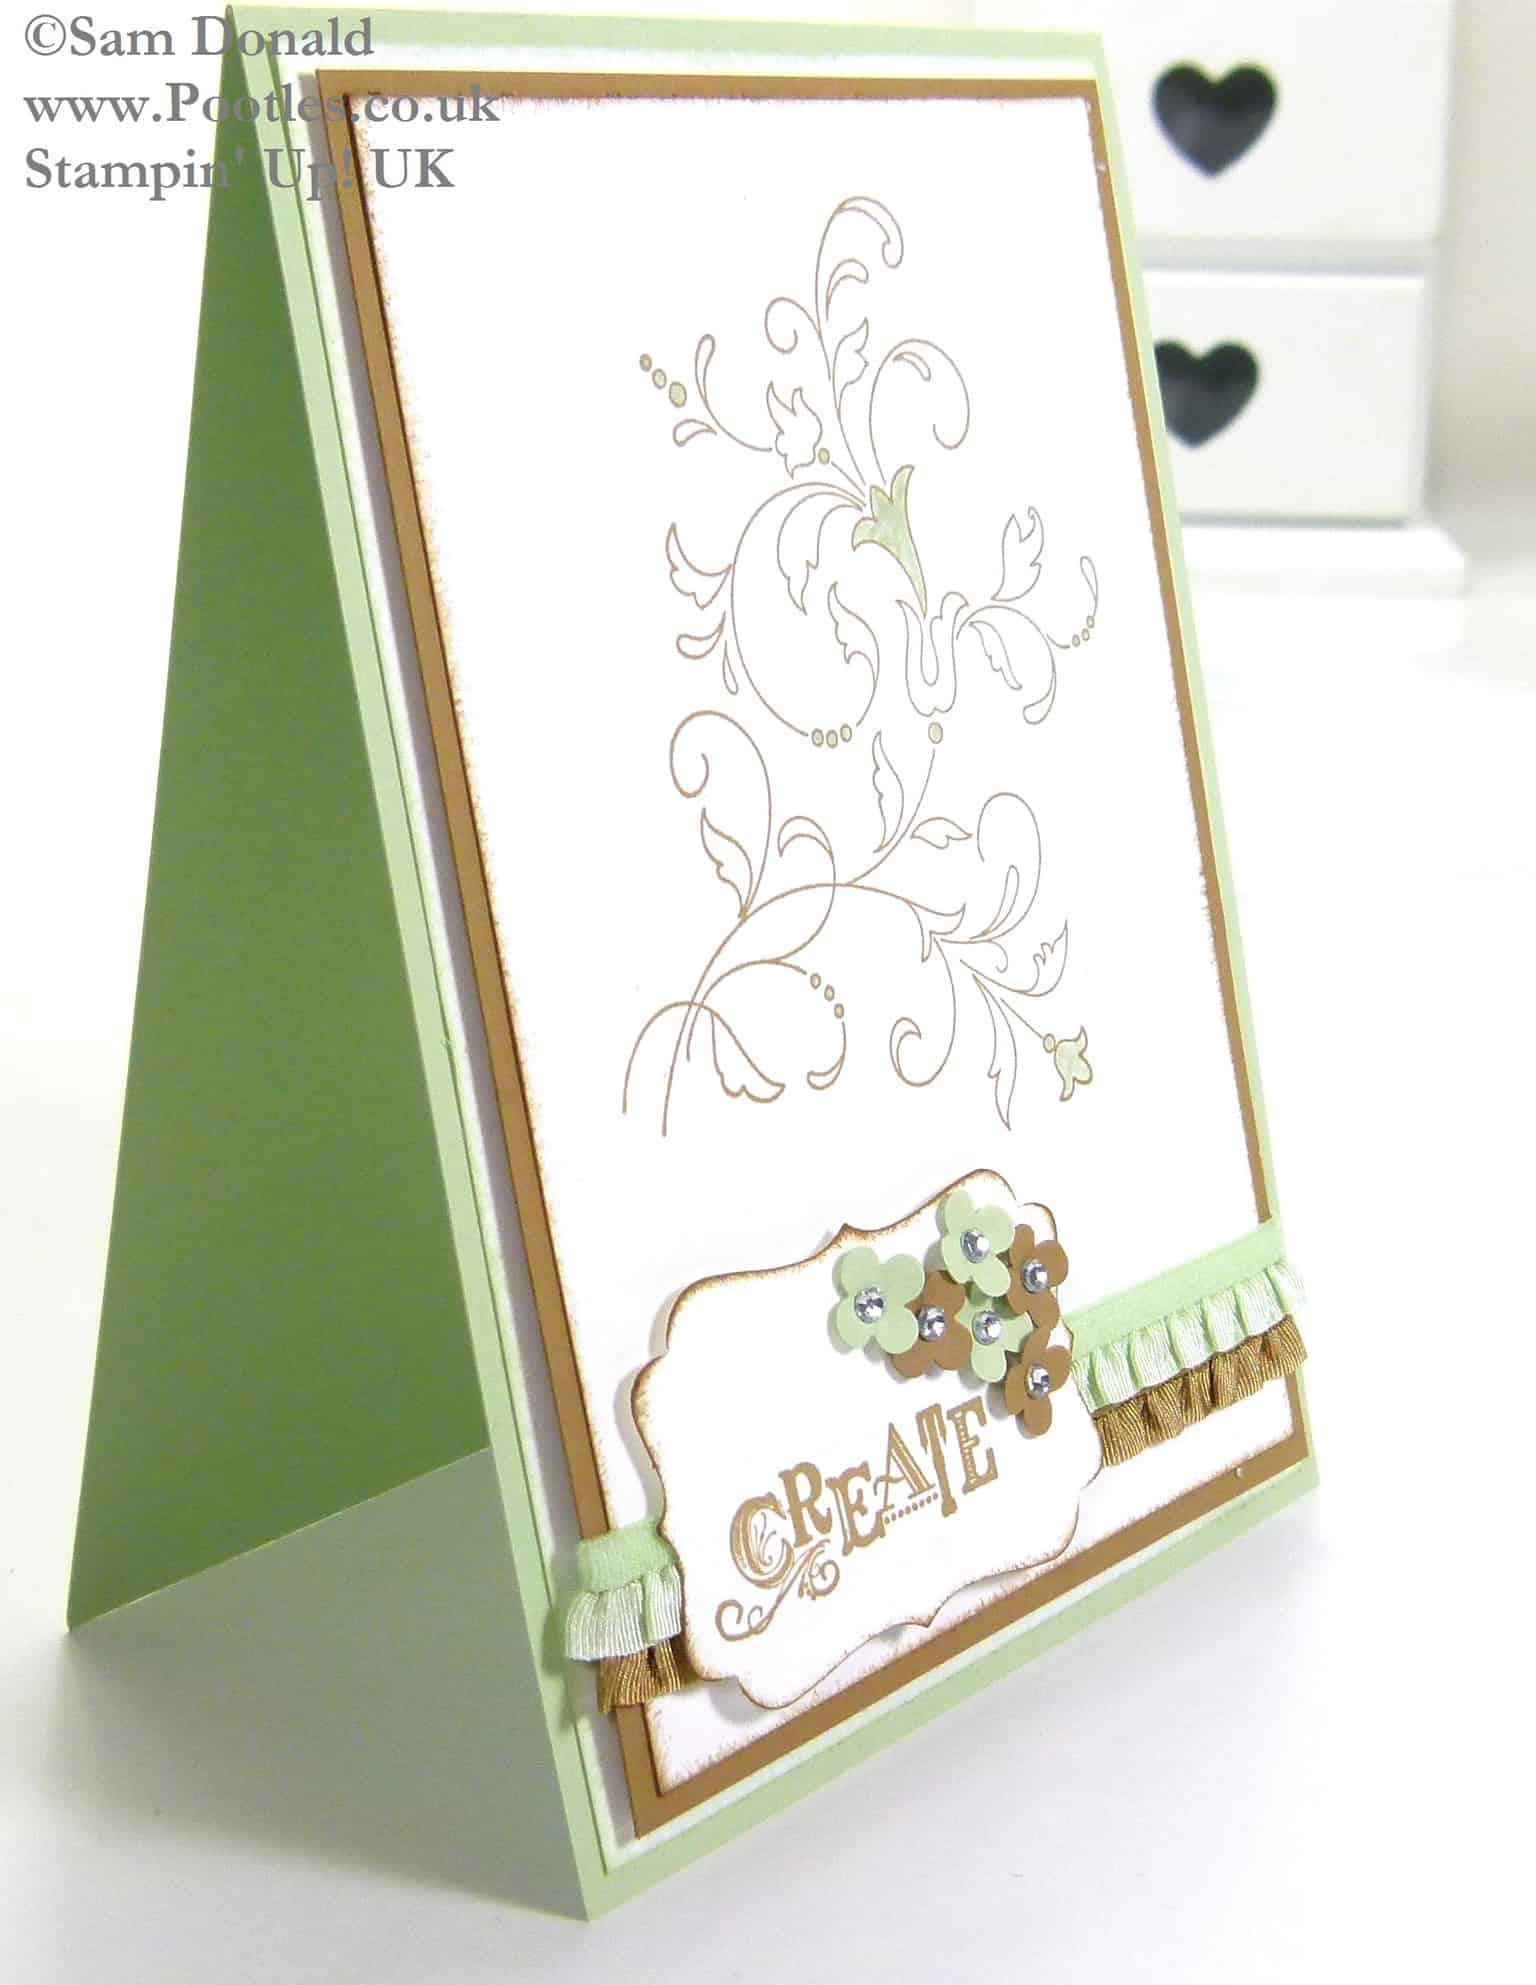 POOTLES Stampin Up UK Creative Elements take on the In Colours 3